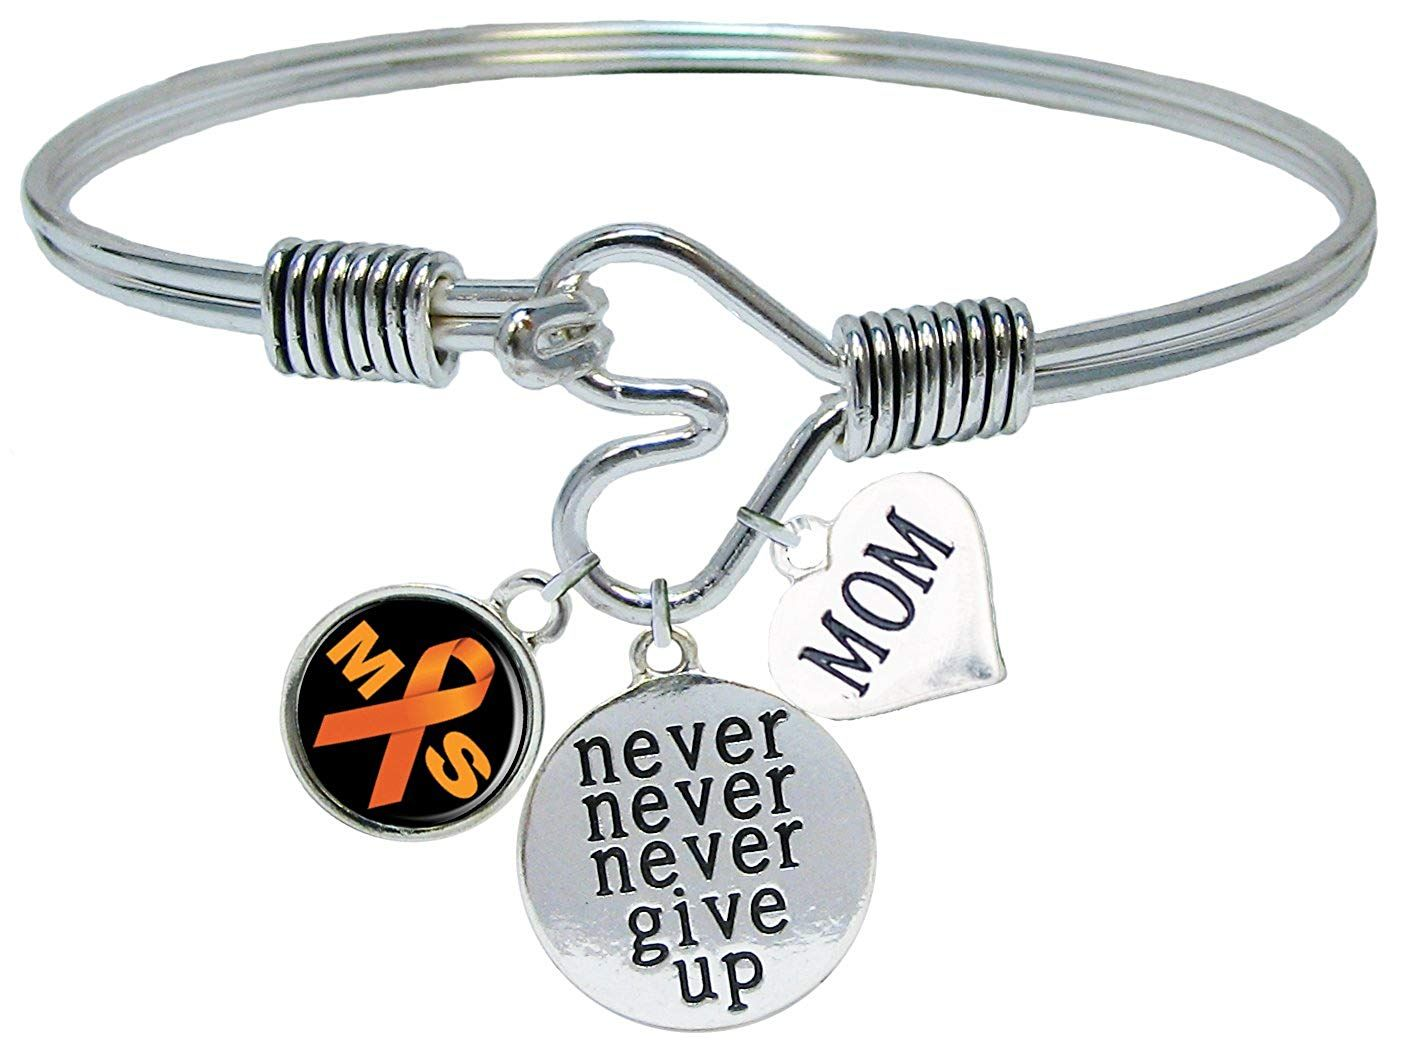 5 3//4 inch Oval Eye Hook Bangle Bracelet with a Cancer Awareness charm.